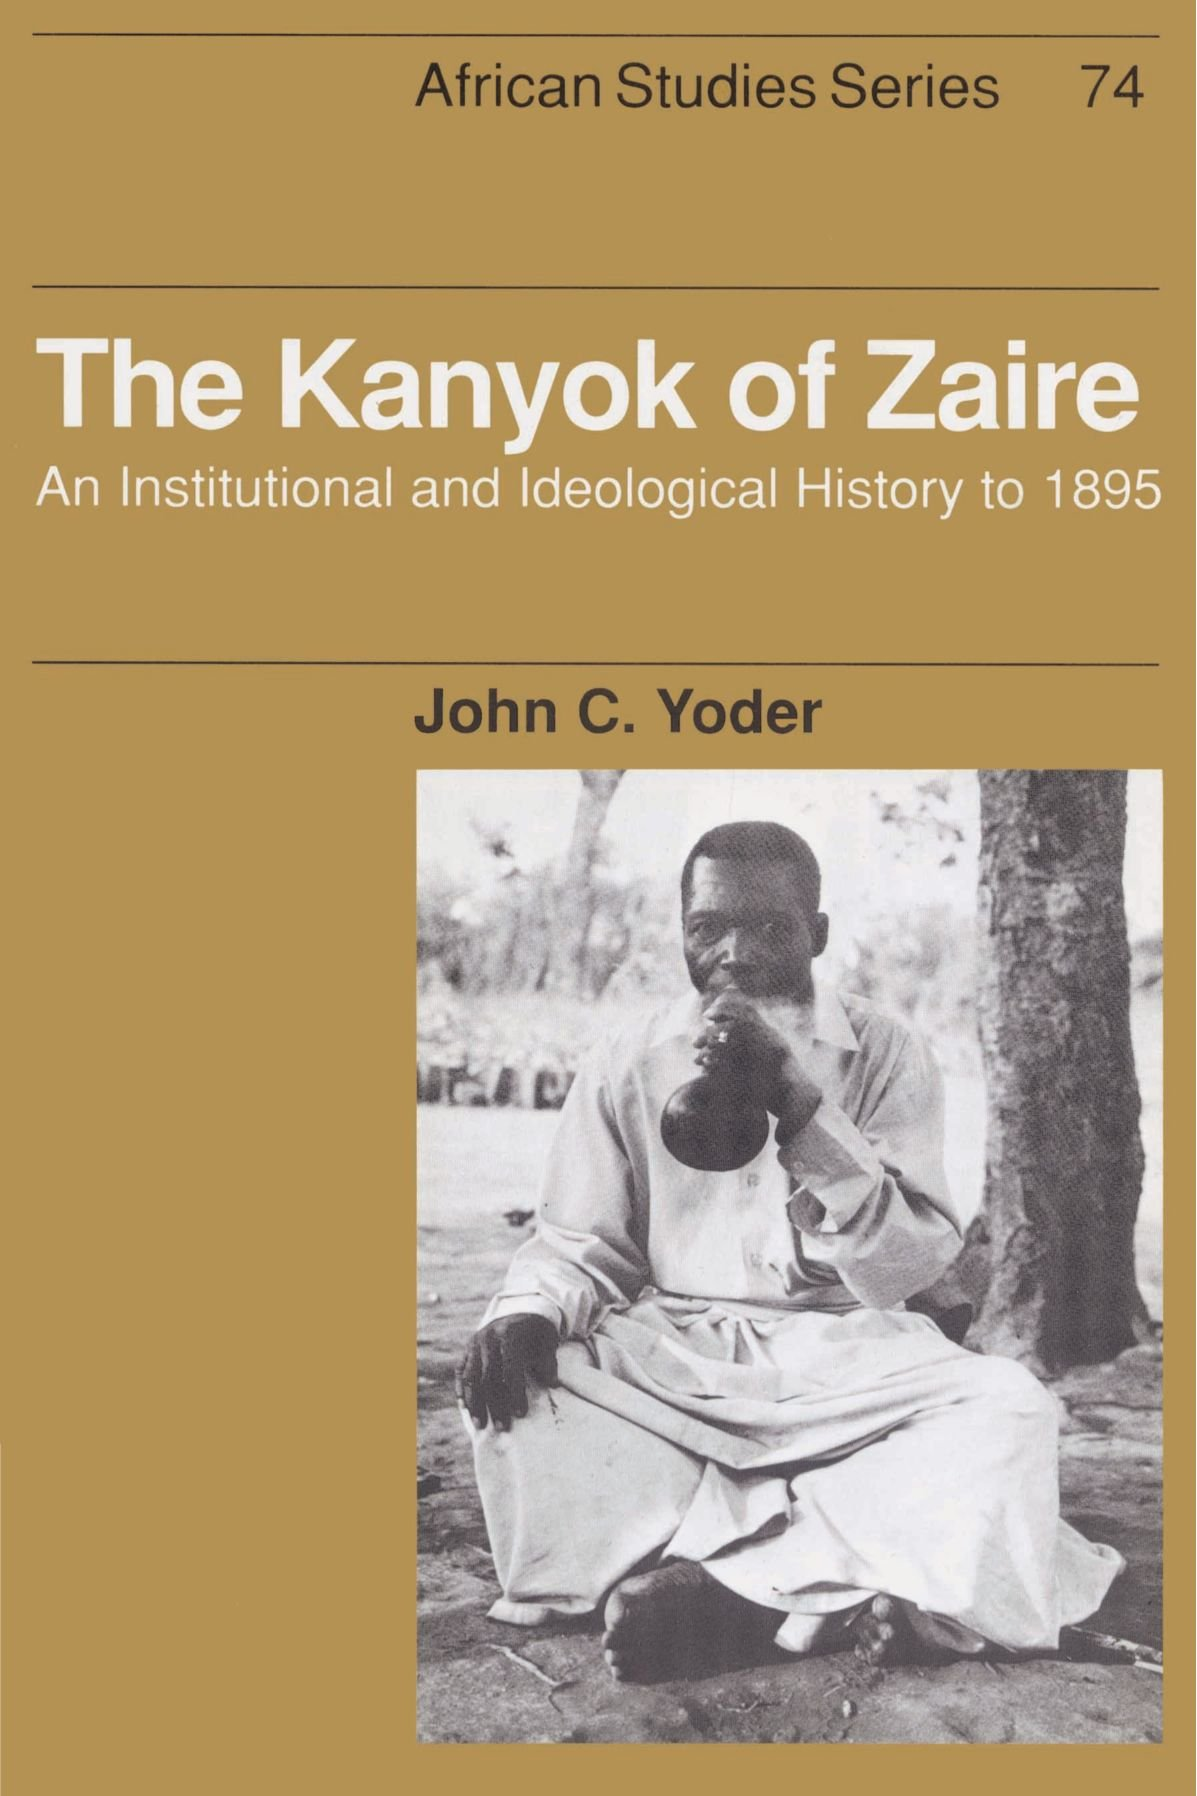 Download The Kanyok of Zaire: An Institutional and Ideological History to 1895 (African Studies) PDF